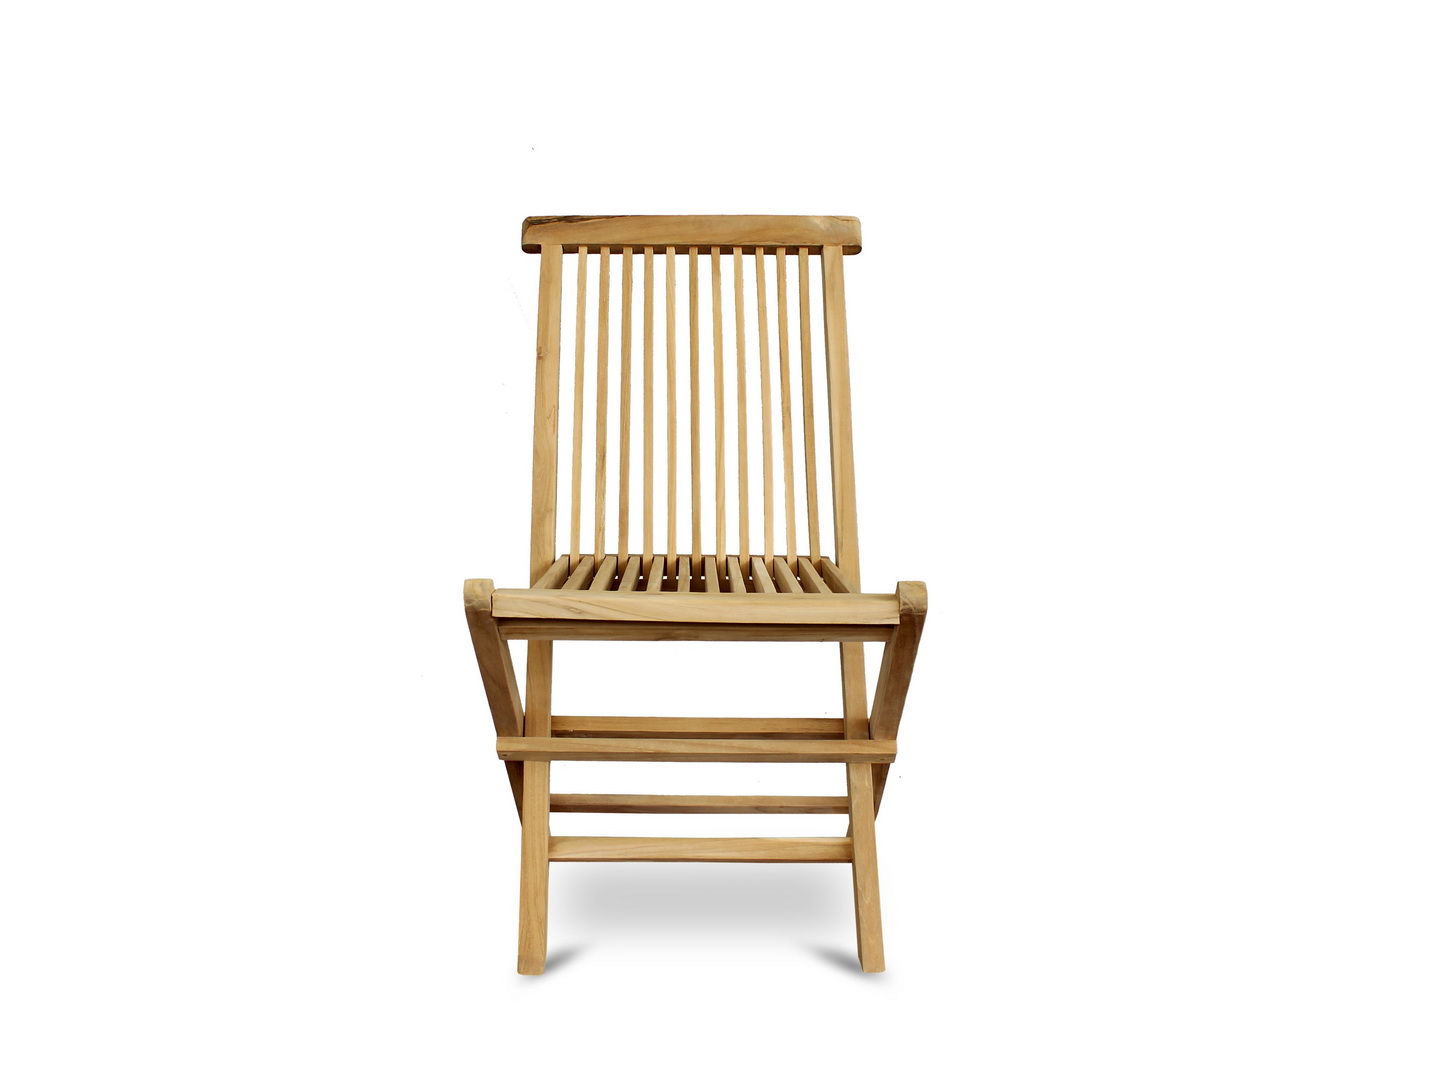 lanse_folding_dining_chair_01_yuni_bali_furniture_manufacturer_wholesale_distributor_bali_furniture_shop_indonesia_teakwood